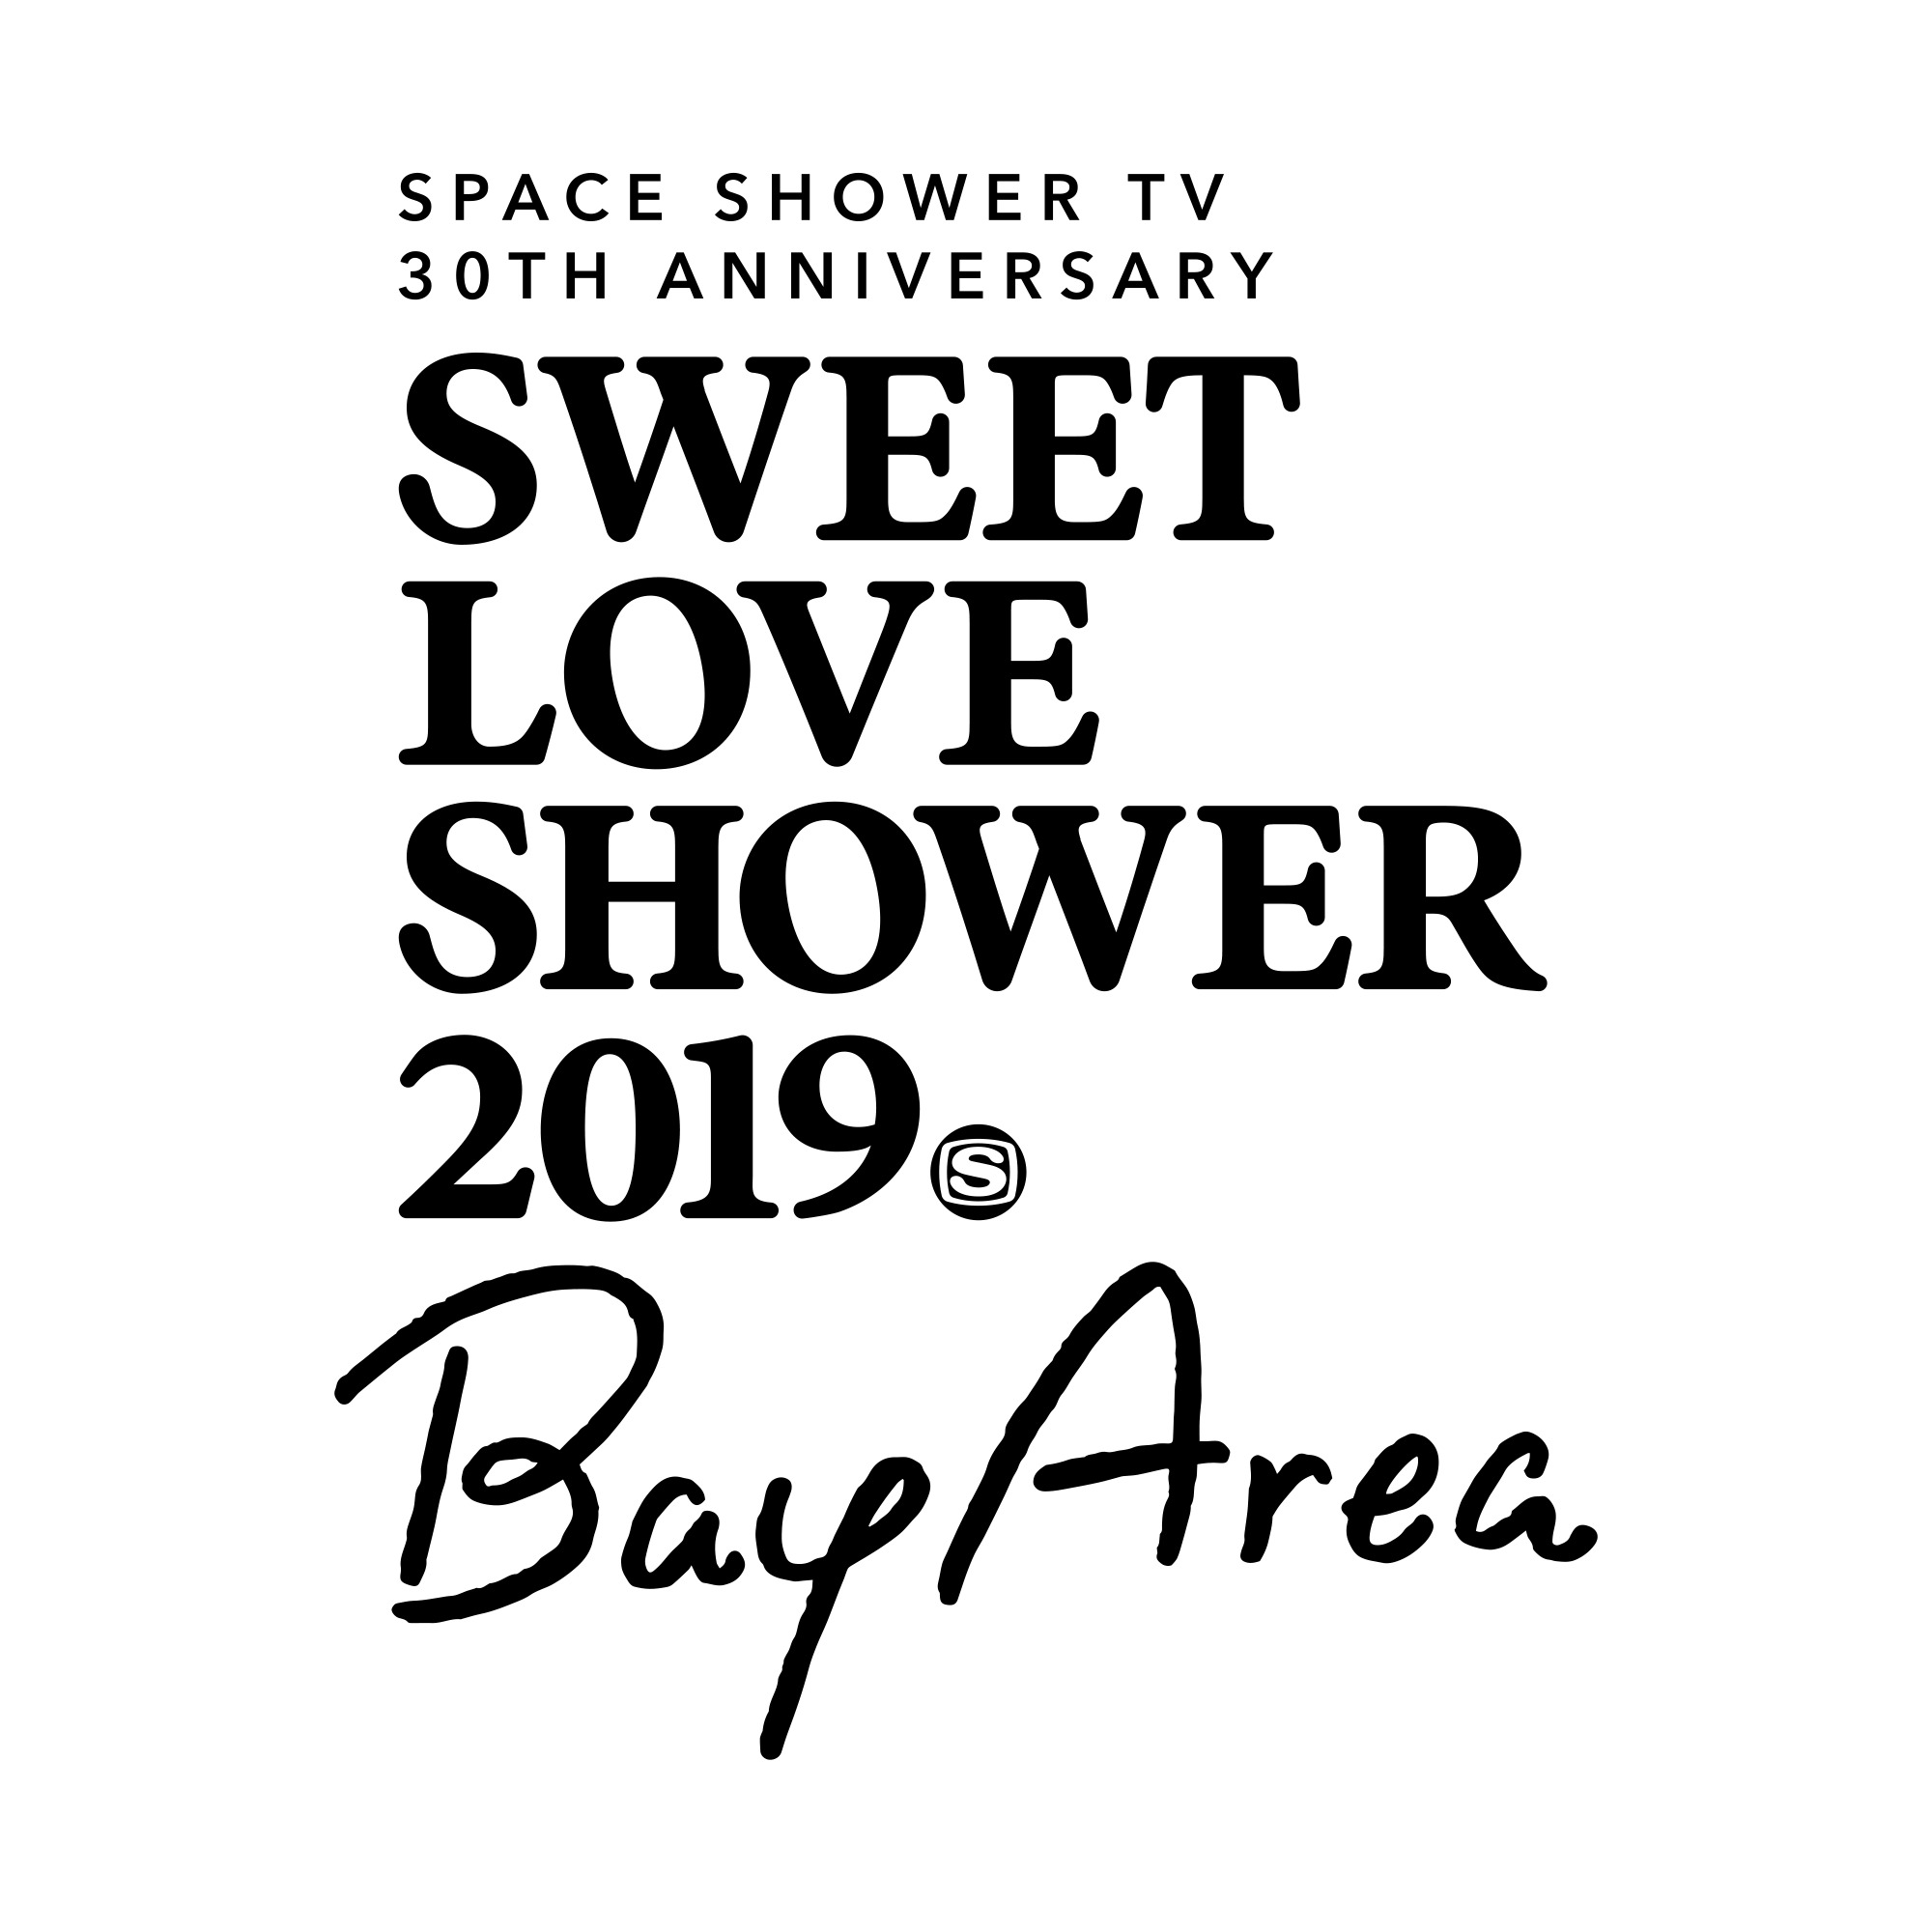 SPACE SHOWER TV 30TH ANNIVERSARY SWEET LOVE SHOWER 2019 ~Bay Area~